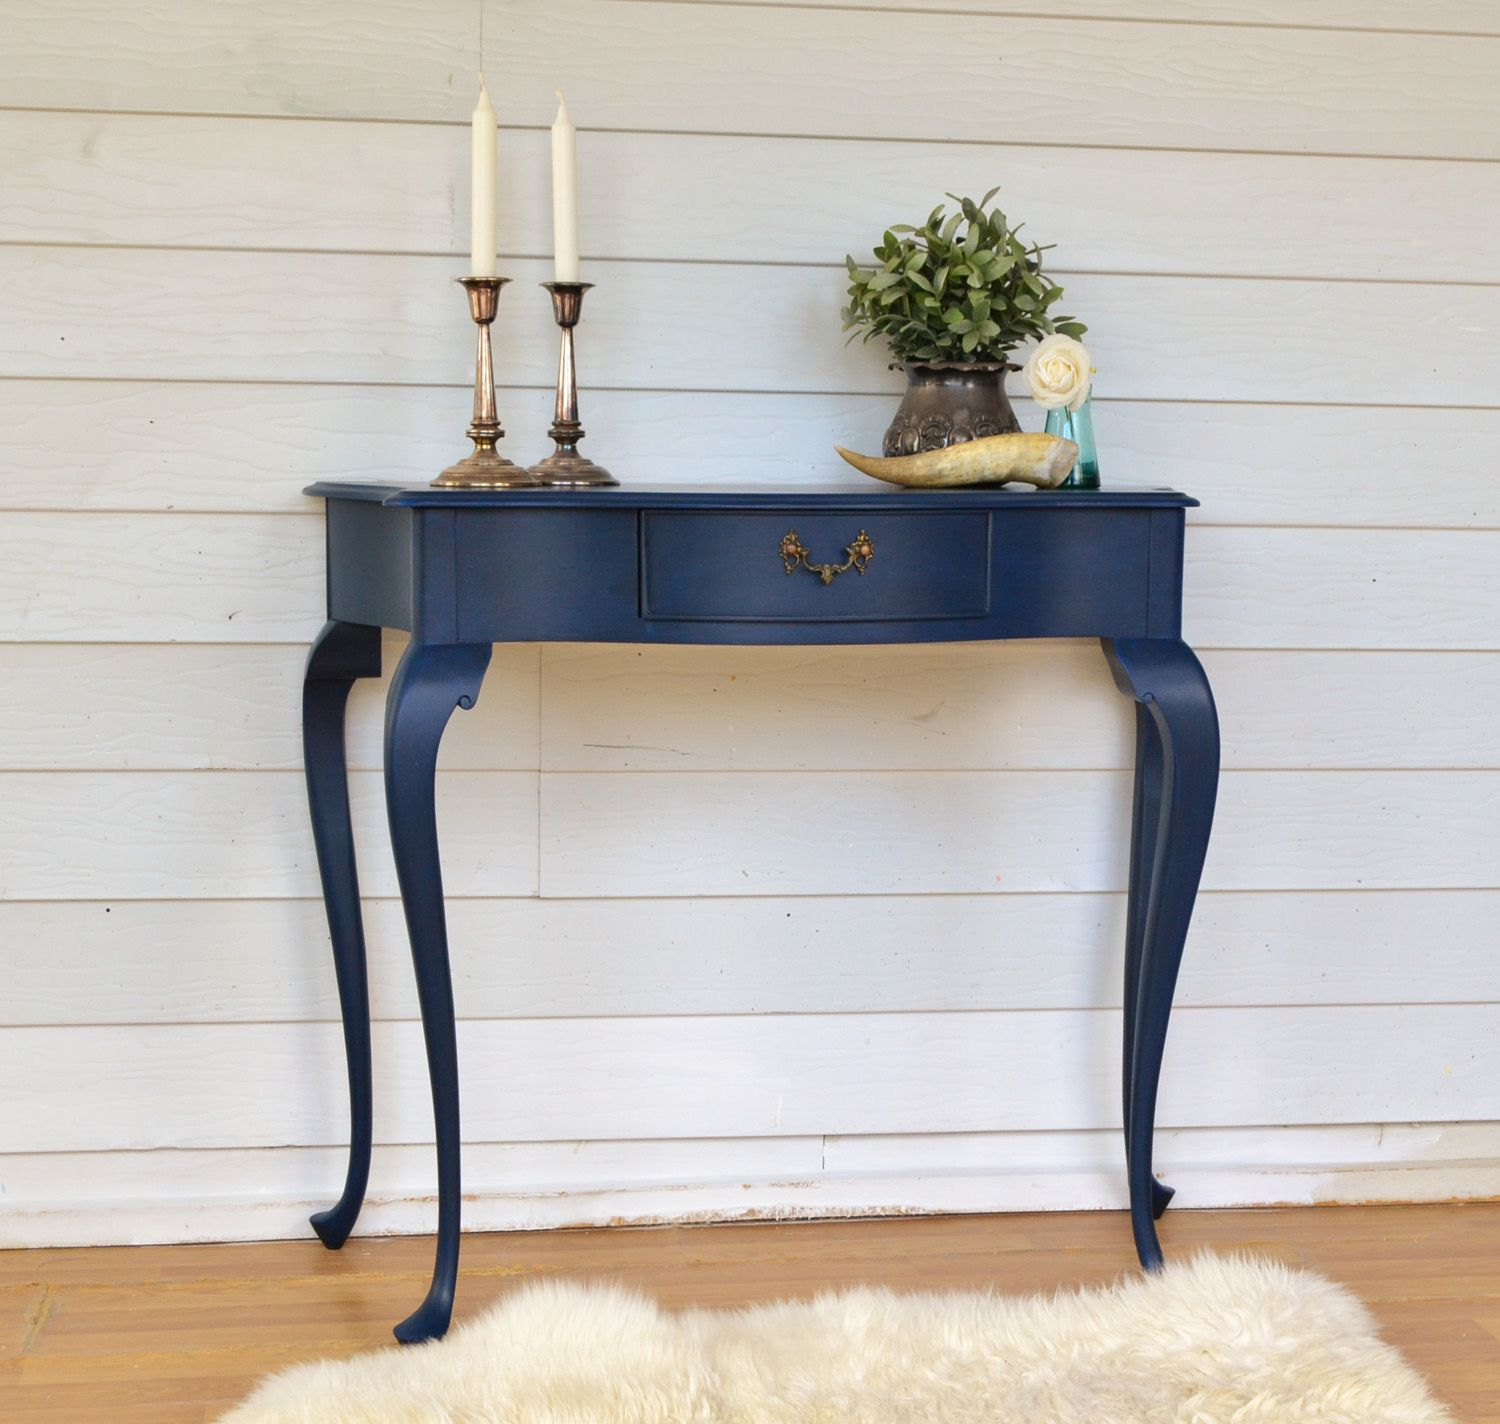 painted queen anne sofa table contemporary side this vintag chalk paint annie sloan ascp milk miss vintage hall with bow front has been in a deep intense sapphire blue perfect statement piece for your entryway